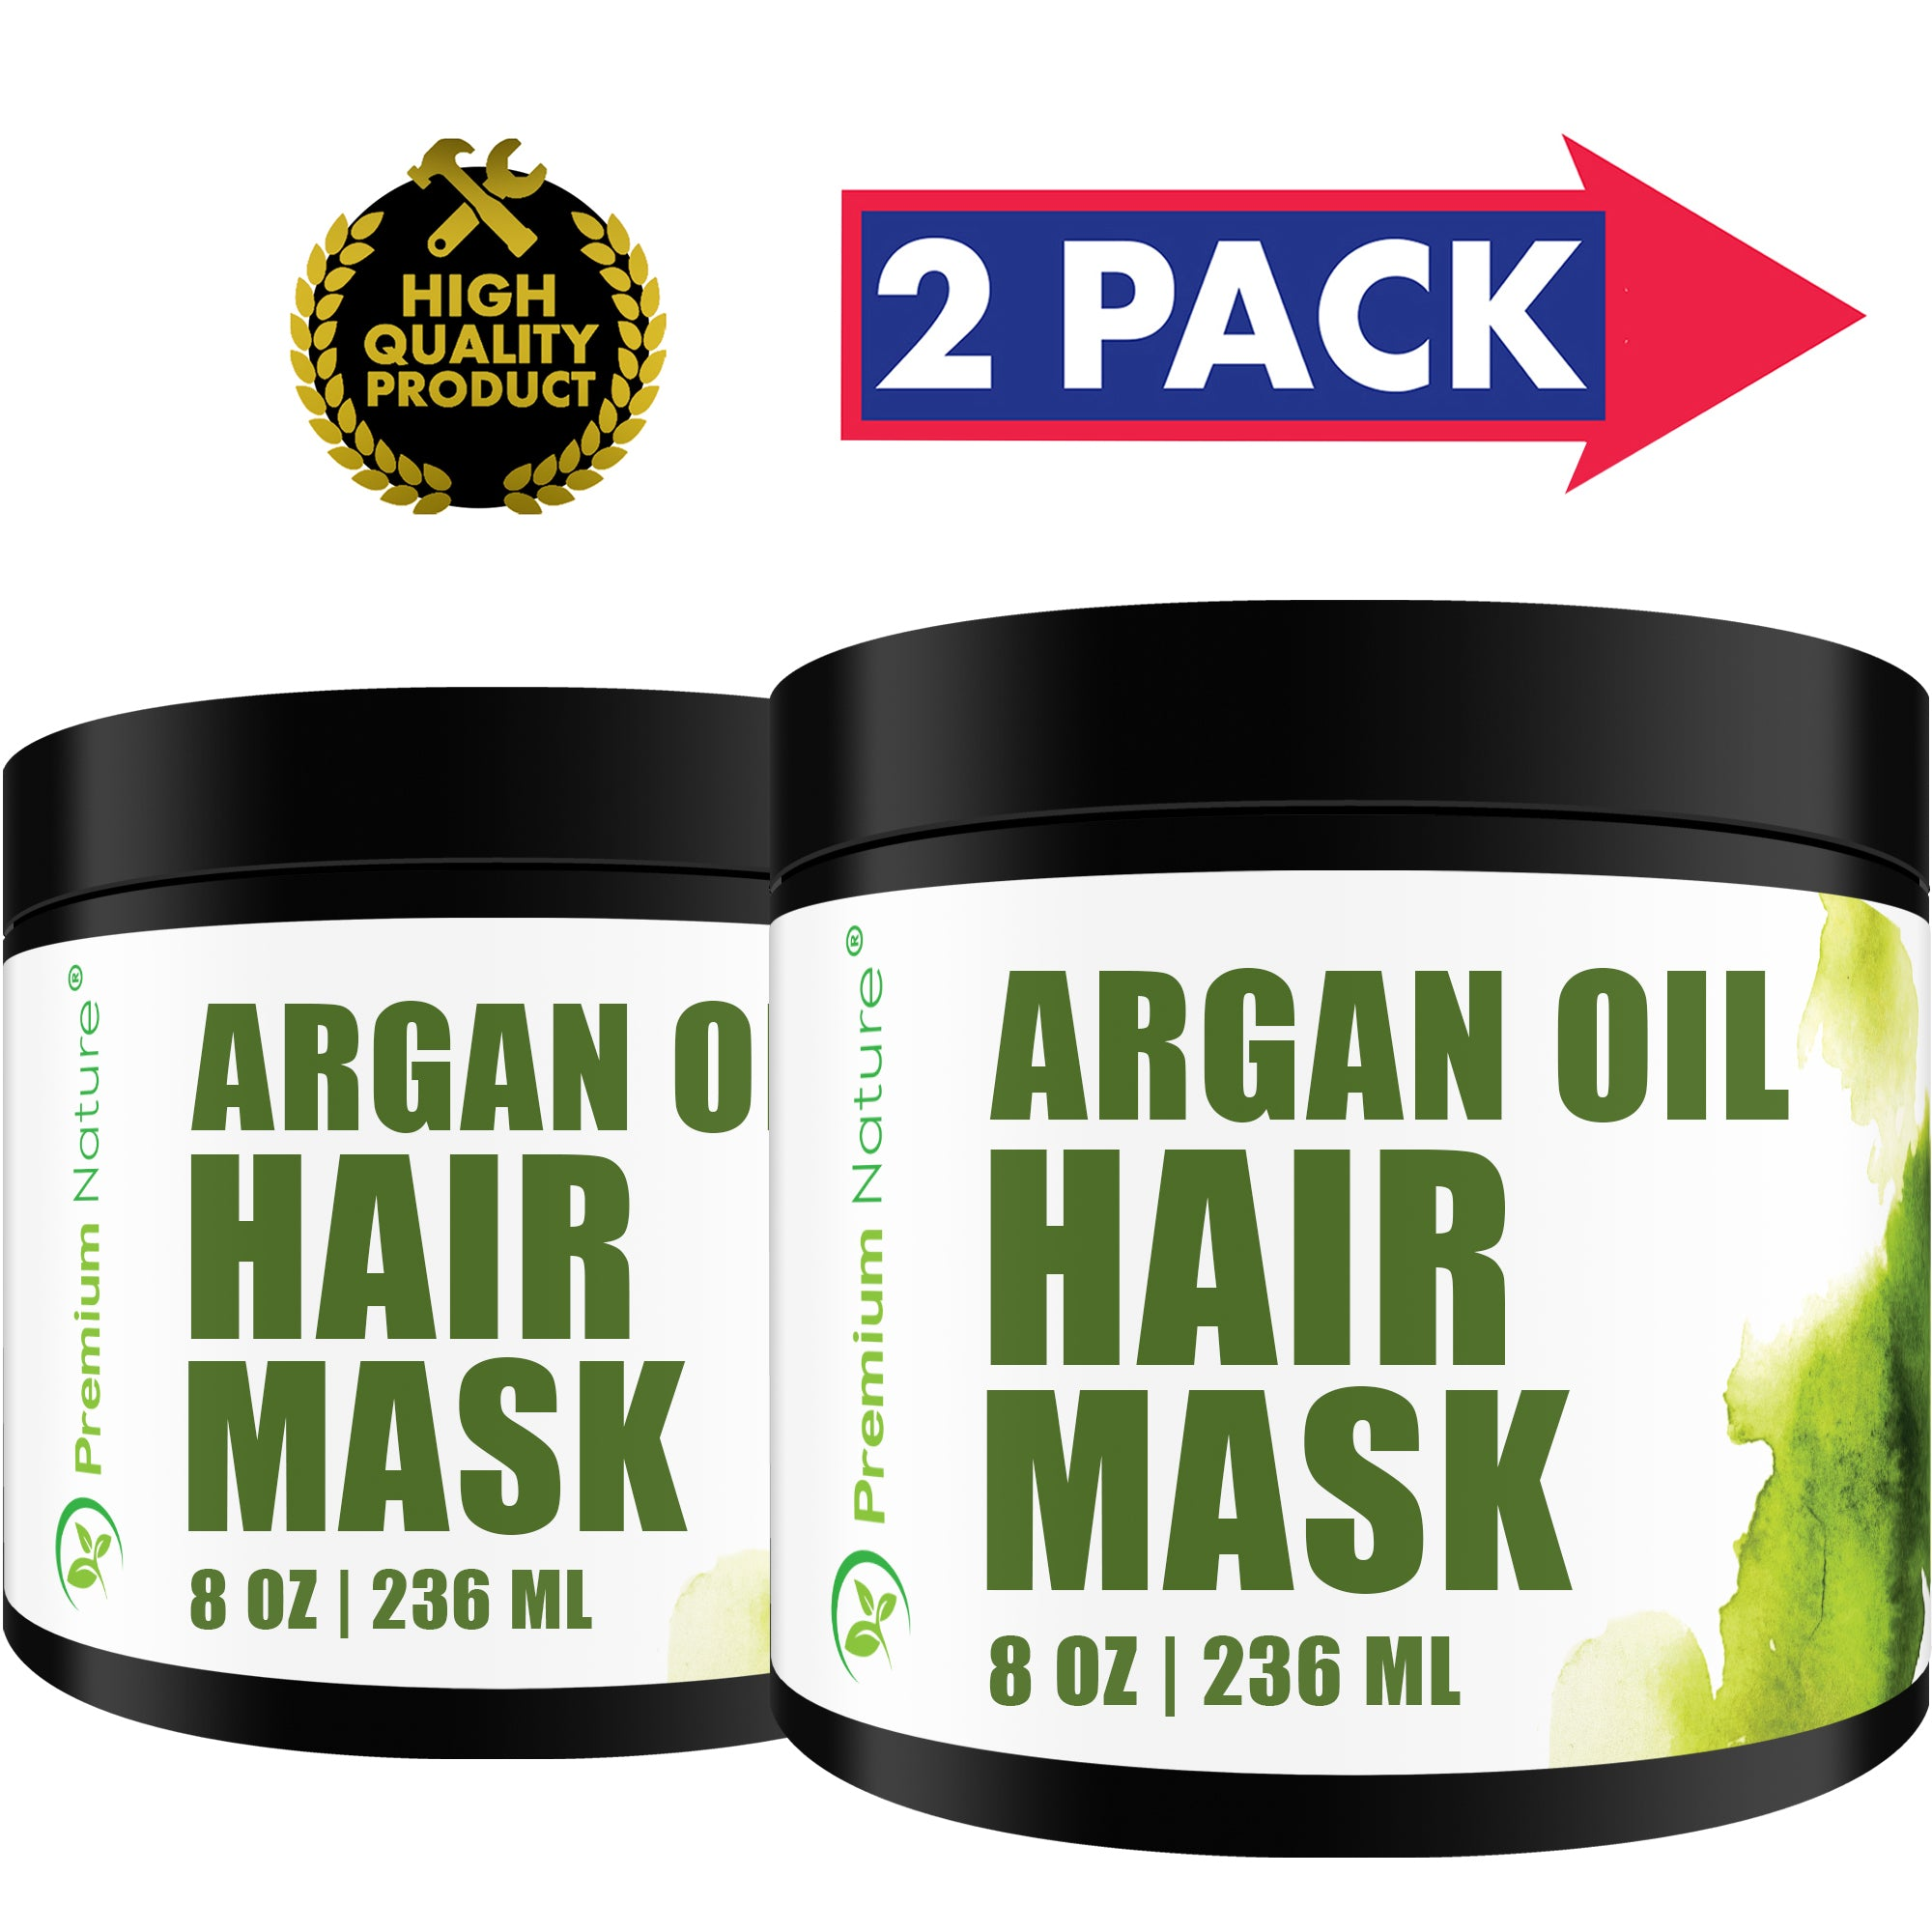 Argan Oil Hair Mask 8 OZ 2 PK